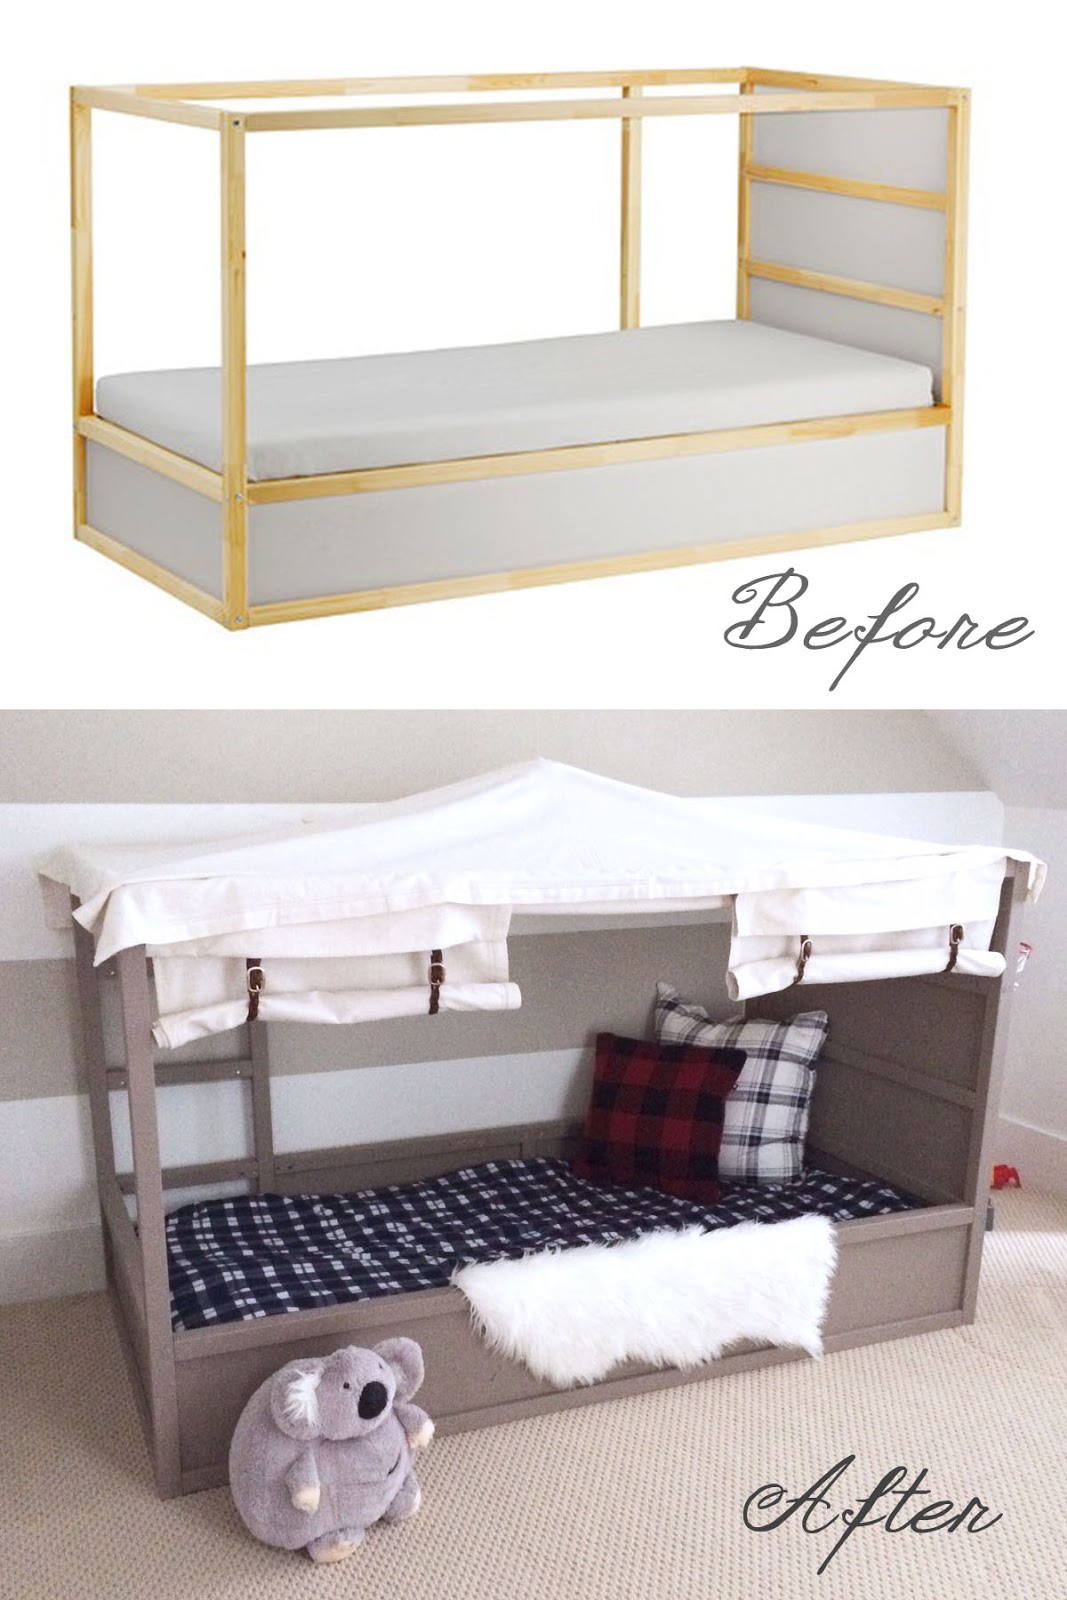 Ikea kura bed hack diy boy canopy bed harlow thistle for Letto kura ikea